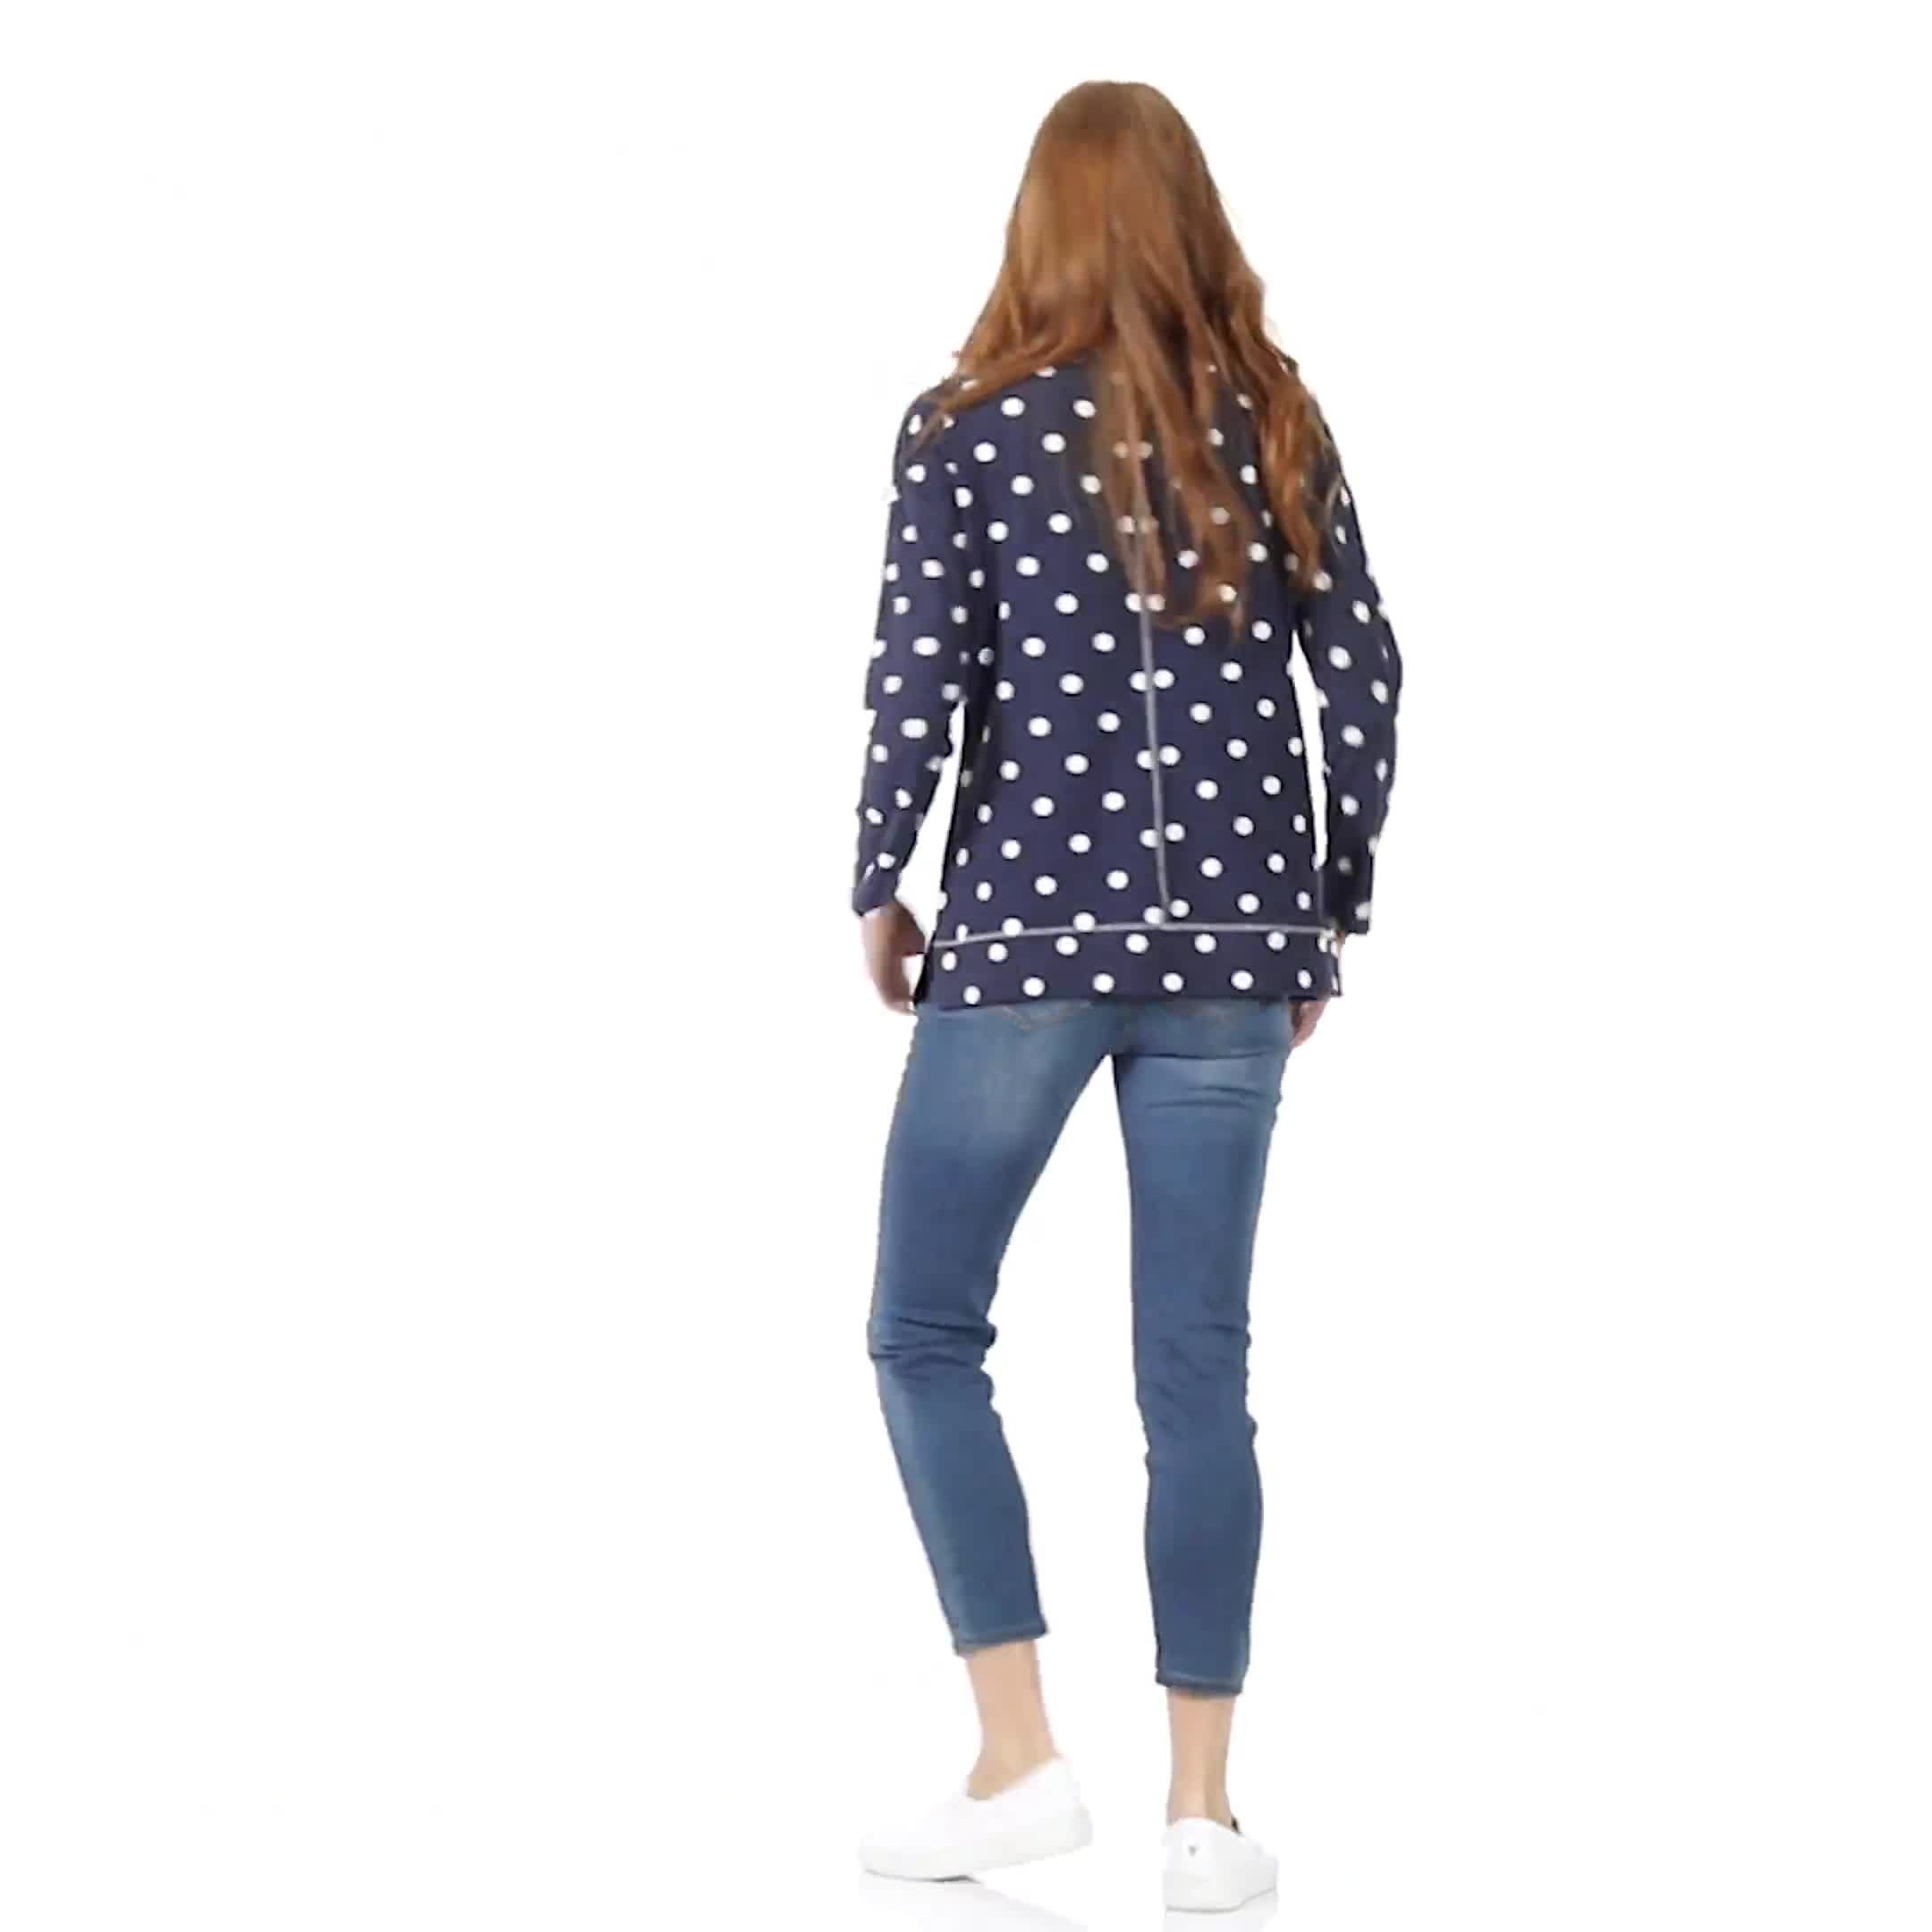 Polka Dot French Terry Sweatshirt - Video